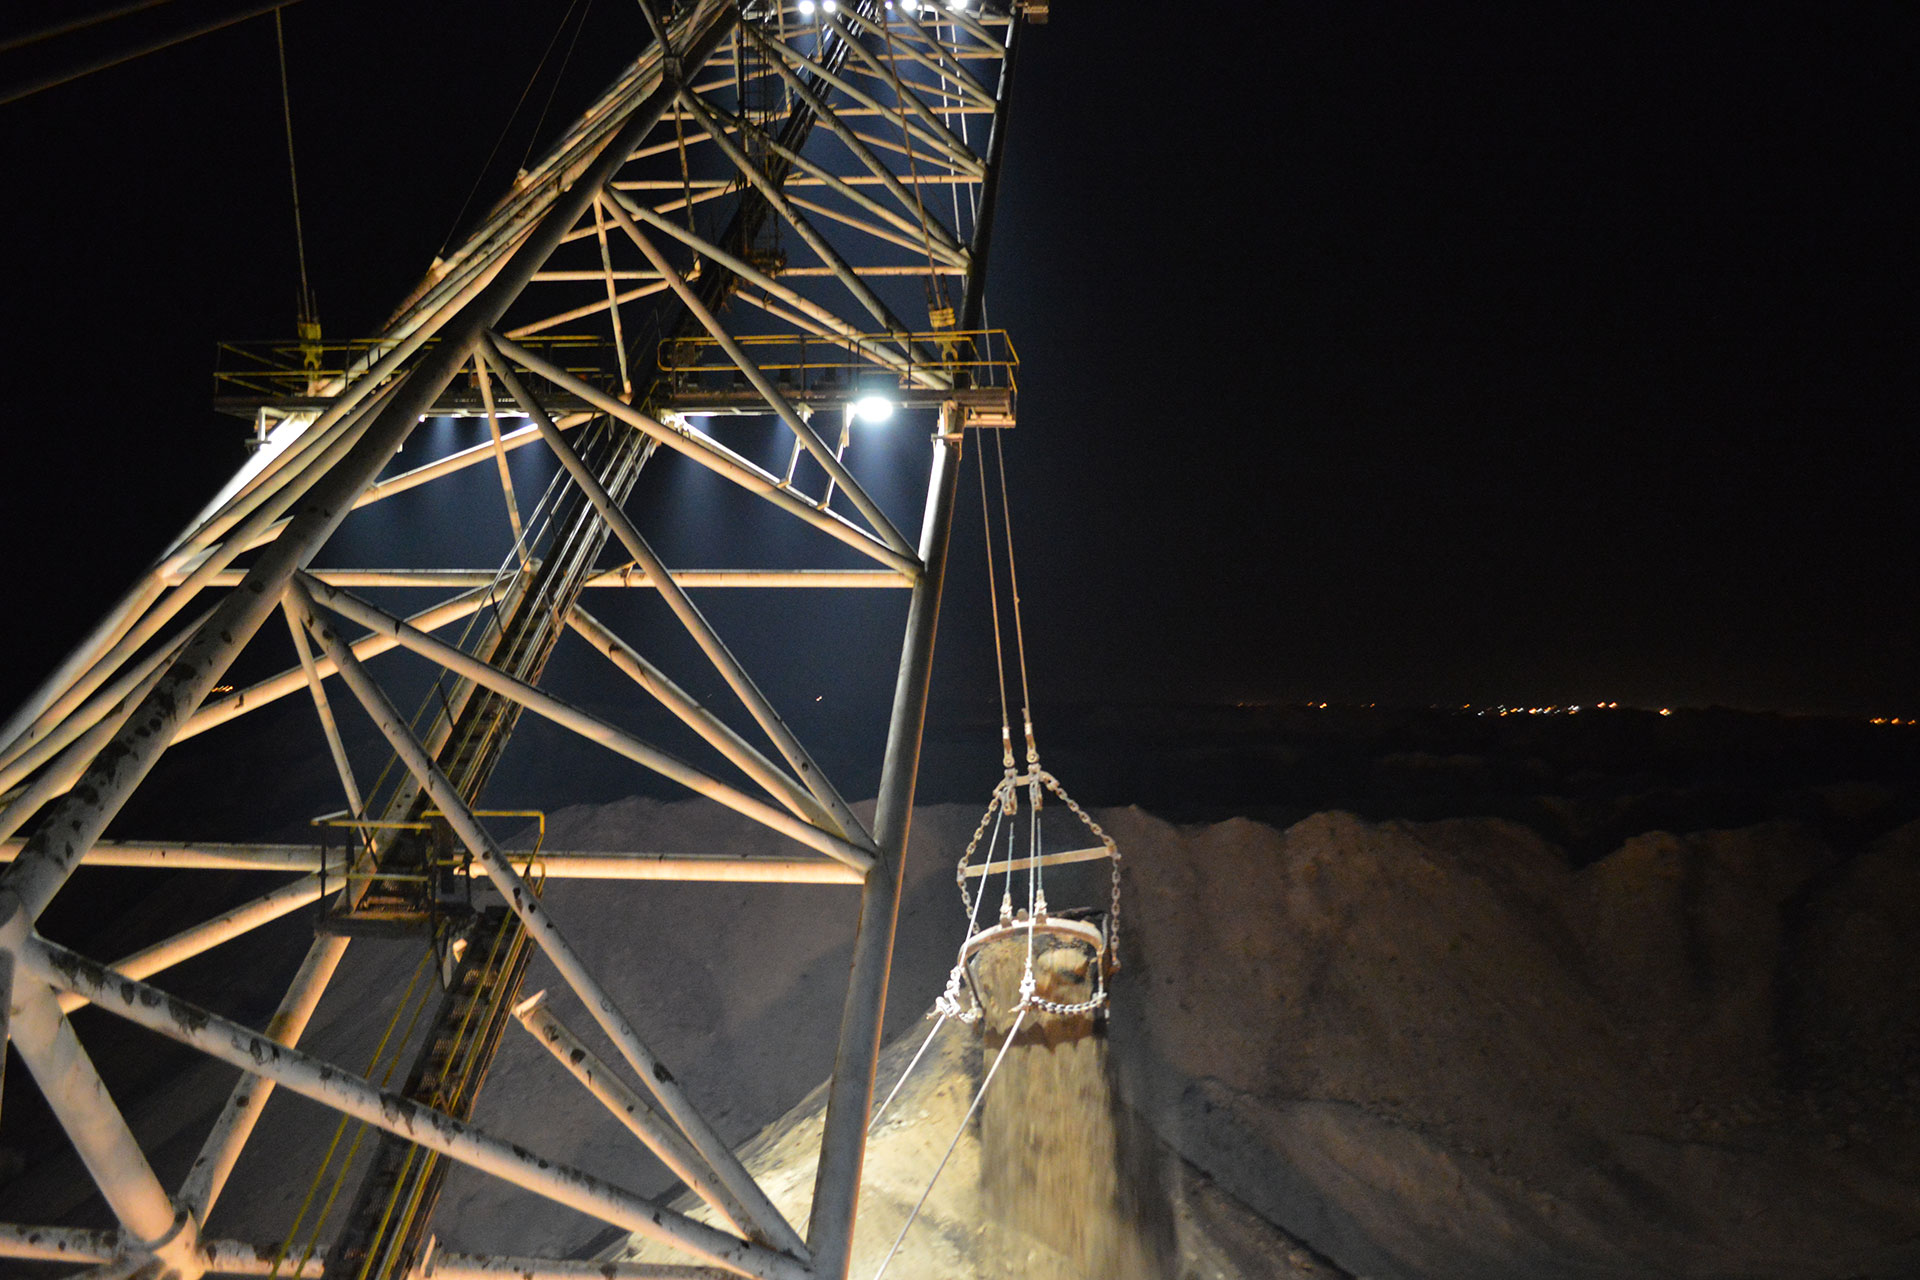 Schréder industry luminaires increase visibility to improve working conditions at this mine